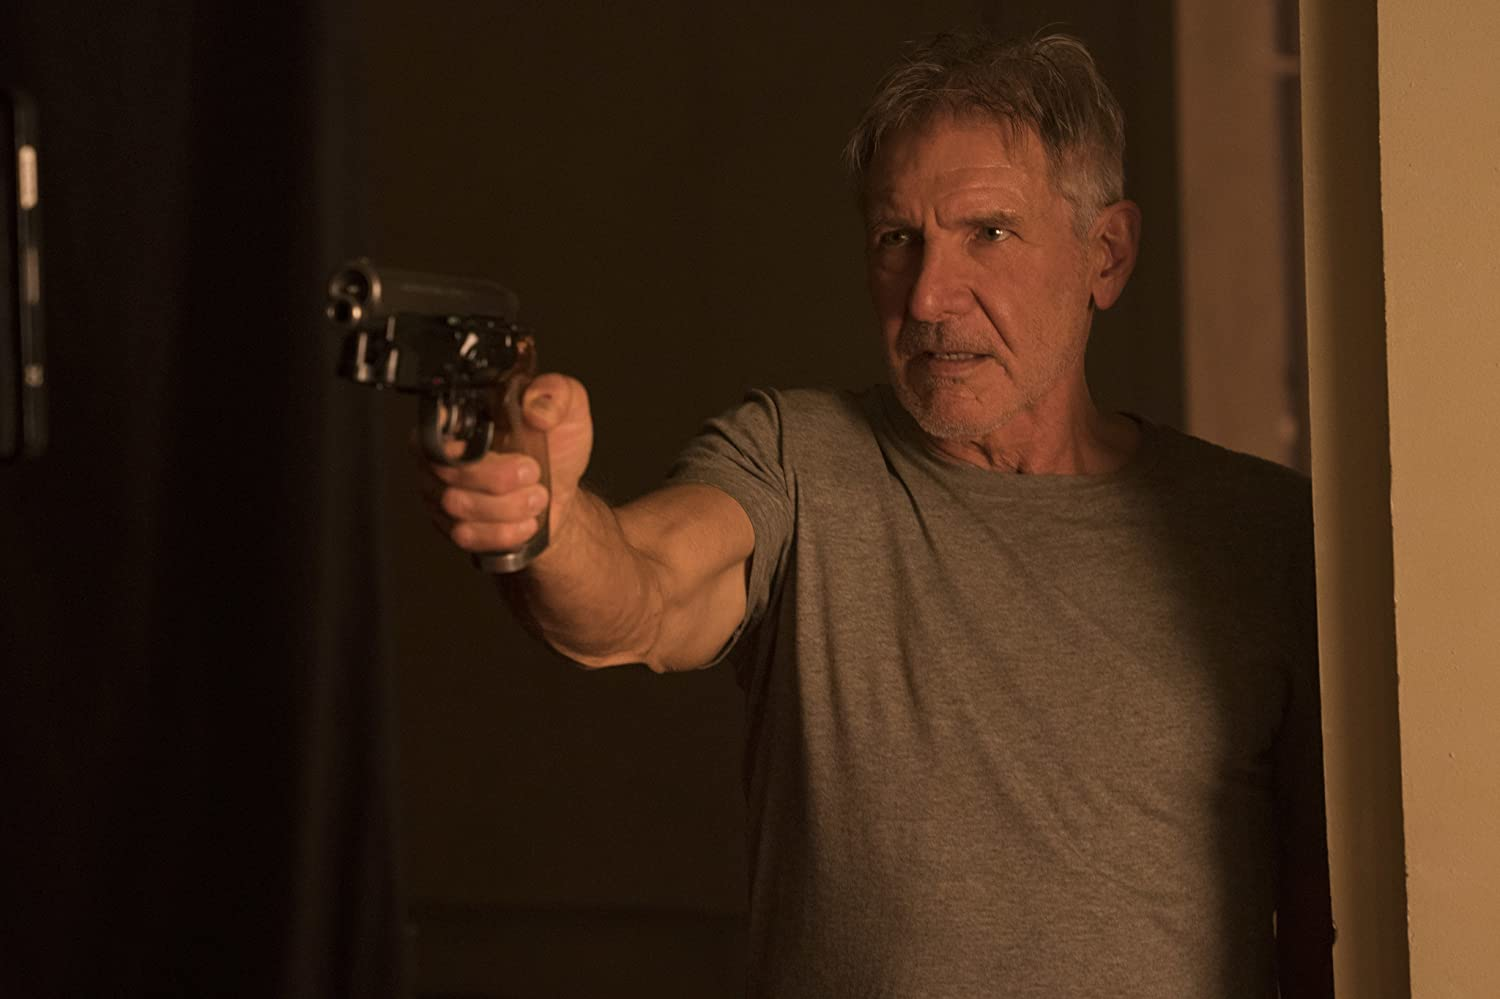 Harrison Ford in Blade Runner 2049 (2017)